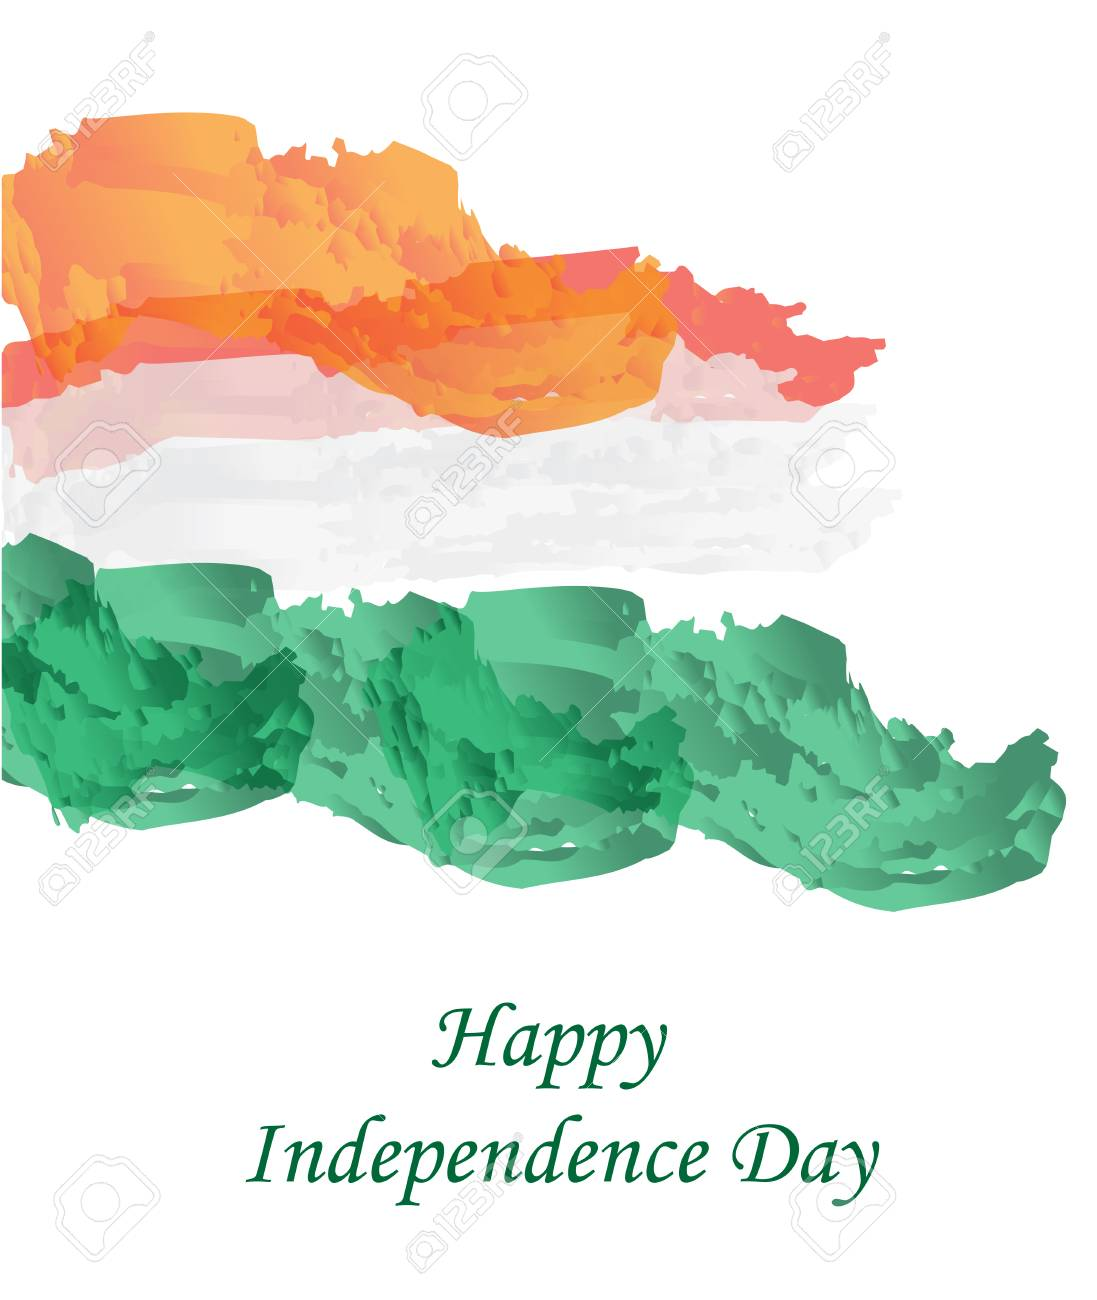 Happy India Independence Day Independence Day Greeting Card